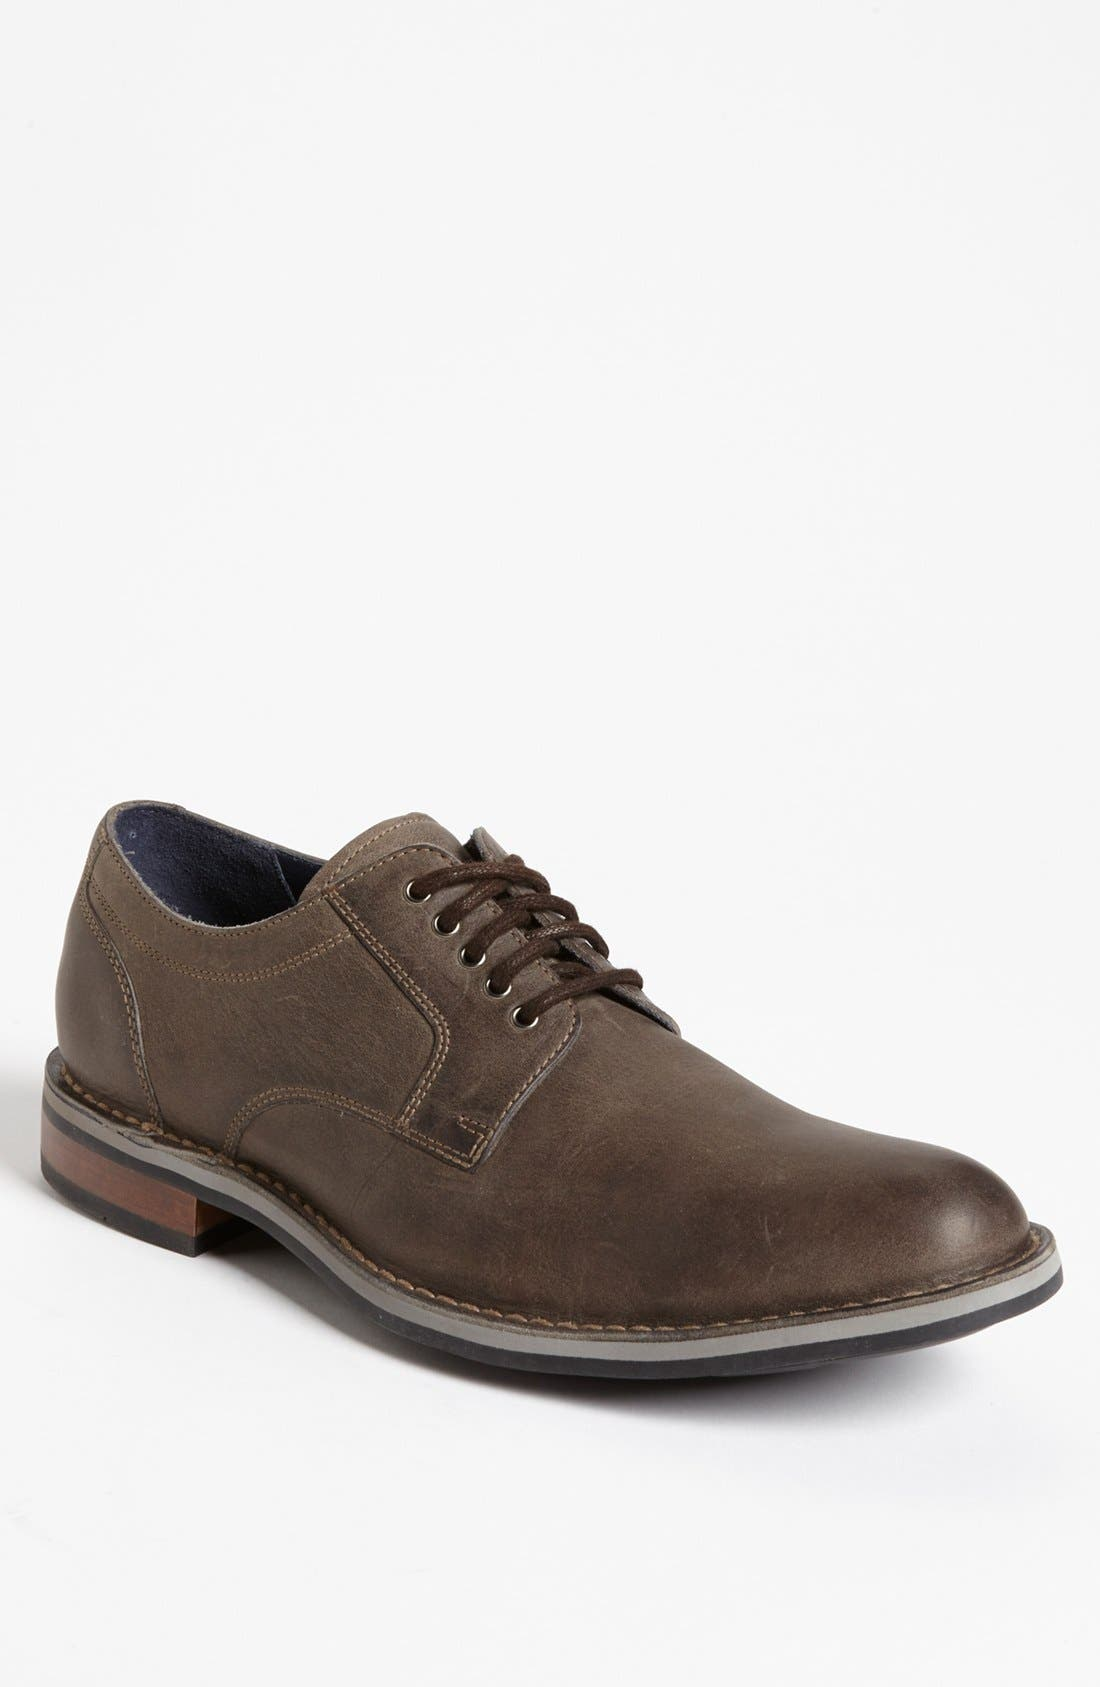 Alternate Image 1 Selected - Cole Haan 'Centre St.' Plain Toe Derby   (Men)